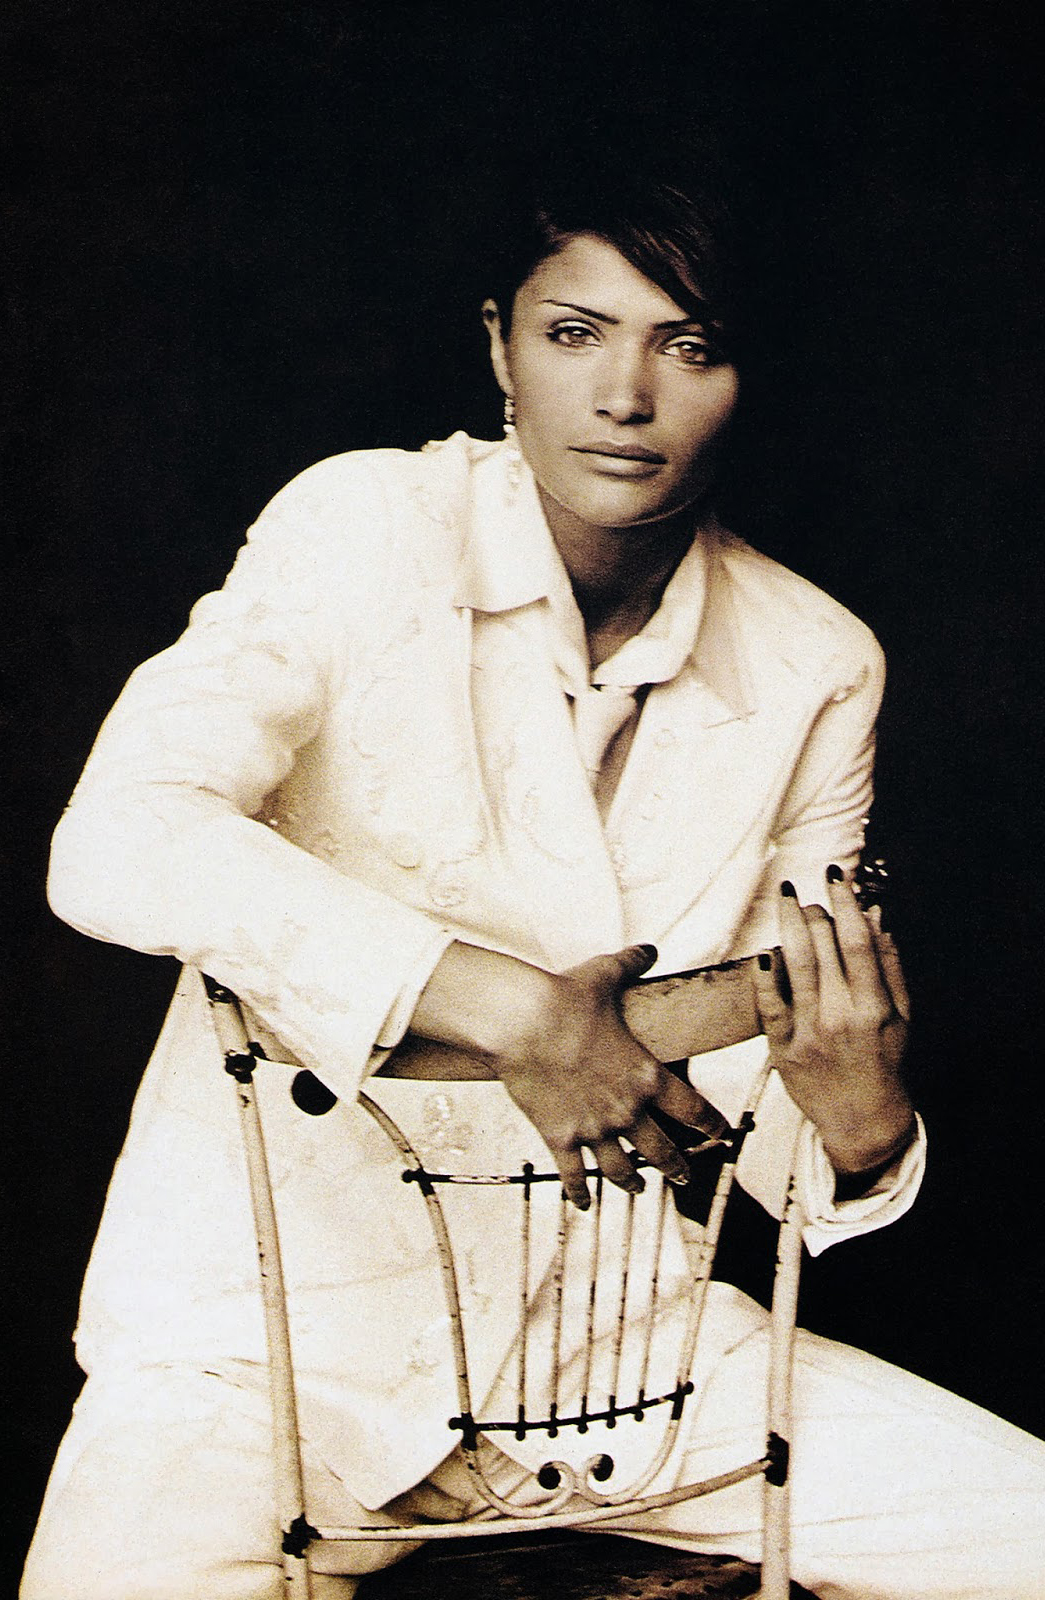 Helena Christensen in Dolce&Gabbana menswear inspired suit by Jacques Olivar in Marie Claire August 1993 editorial